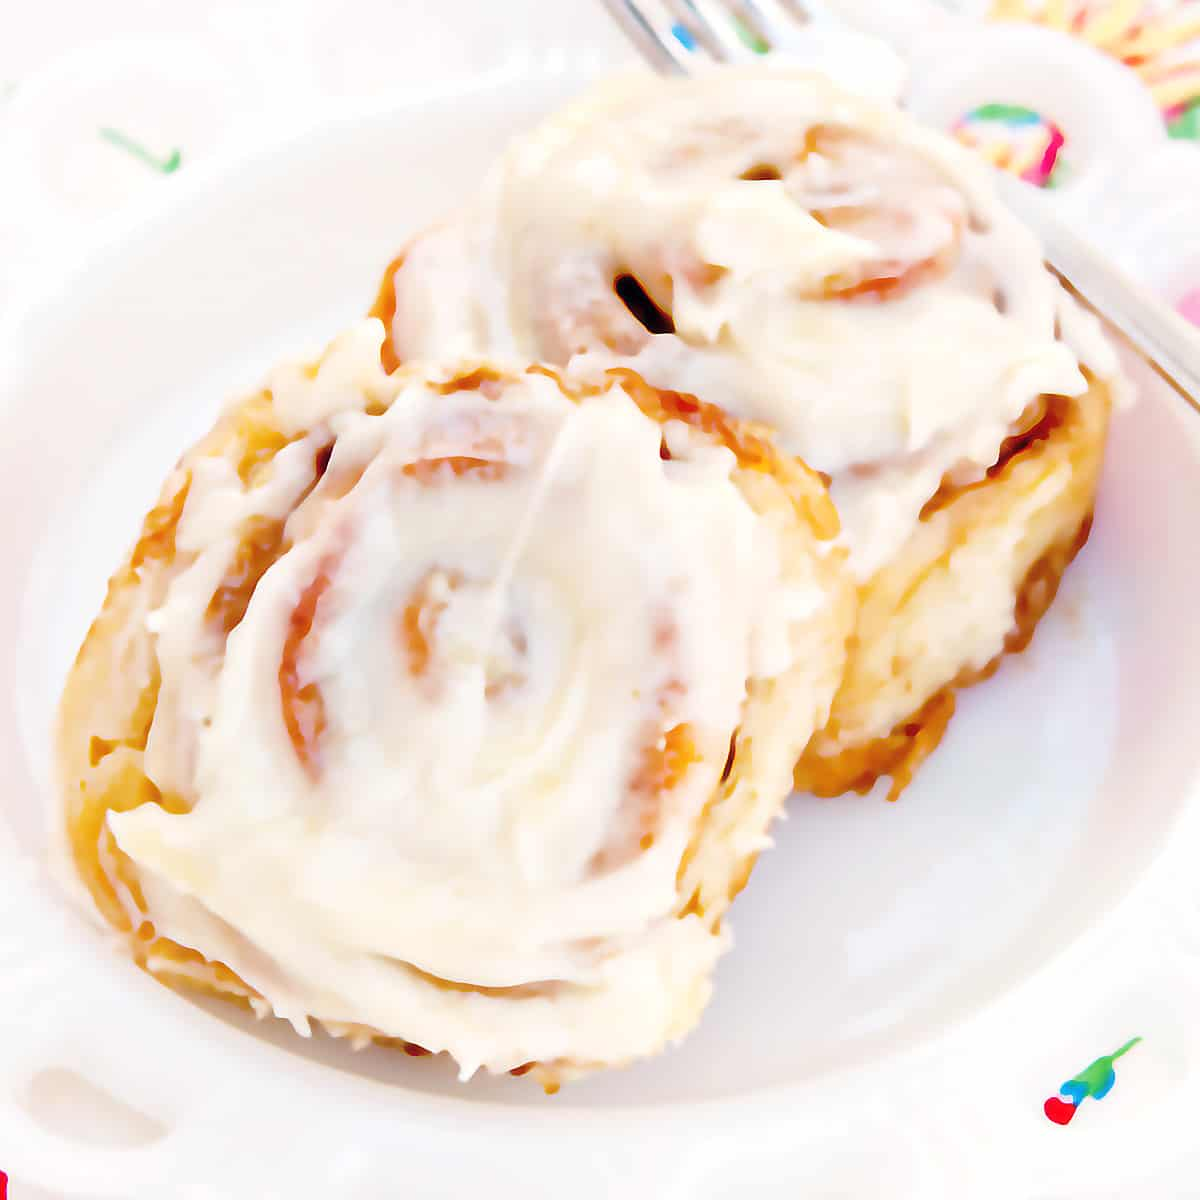 Two cinnamon rolls on a serving plate with a fork on the side.